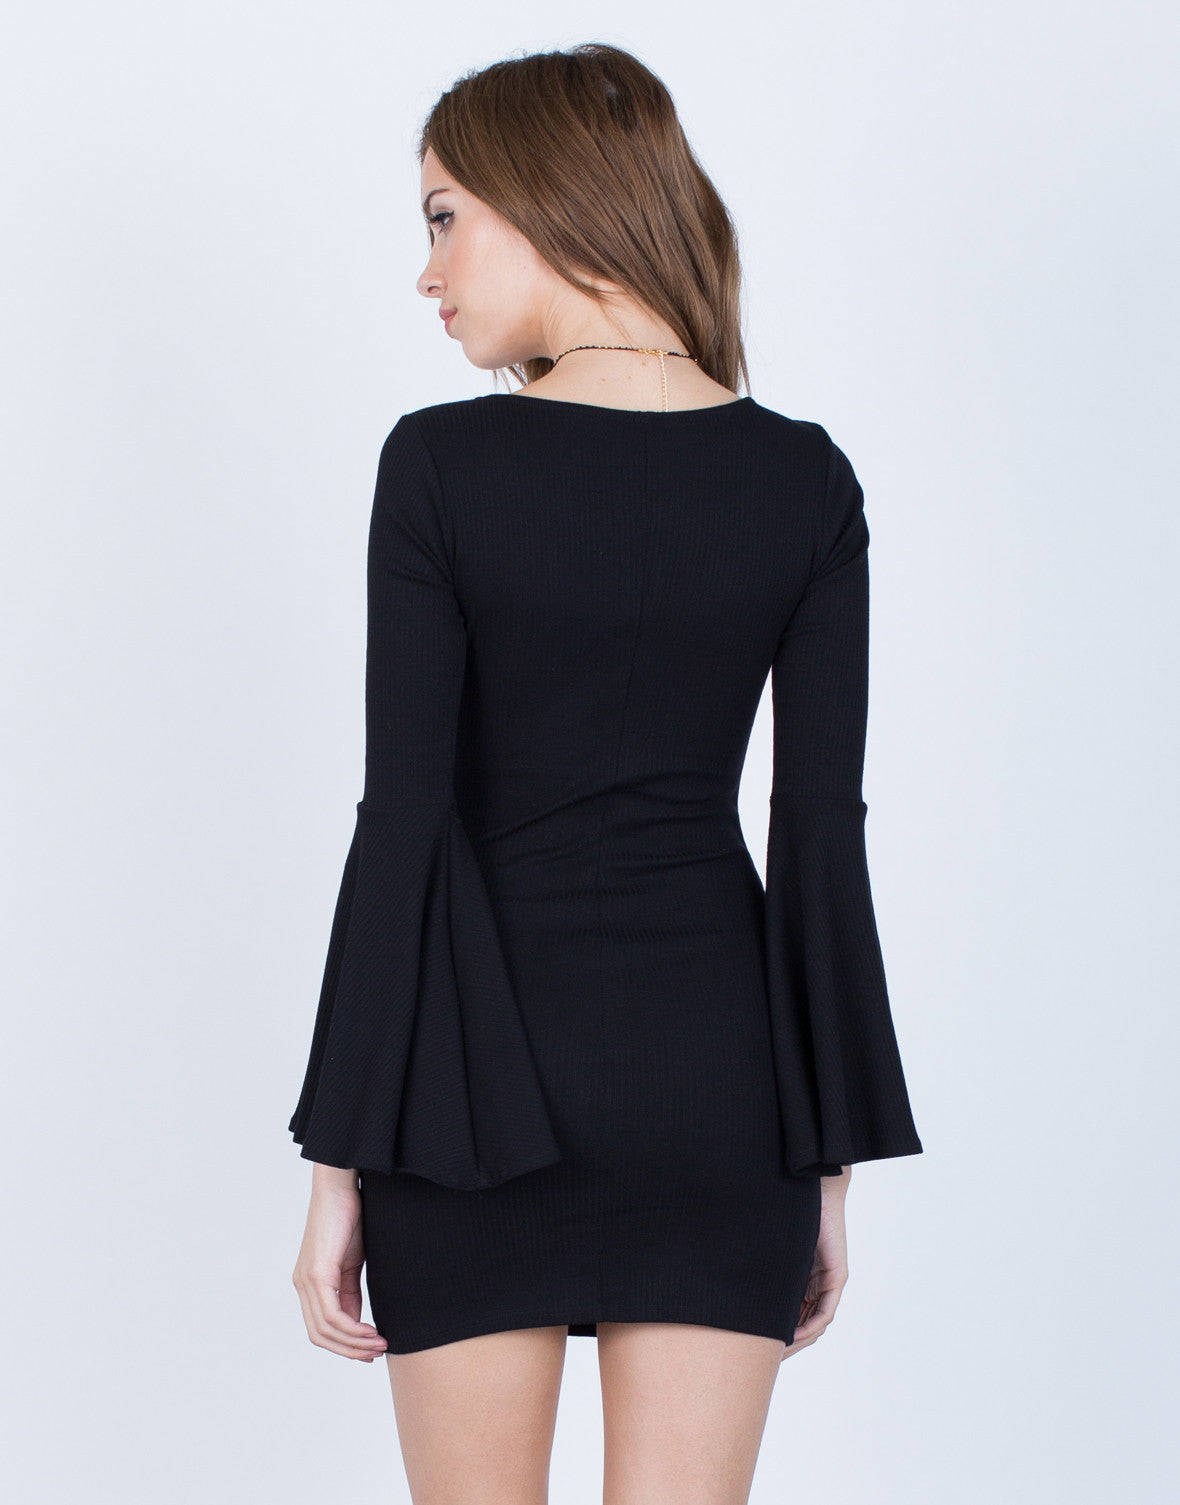 Back View of Little Black Bell Sleeve Dress